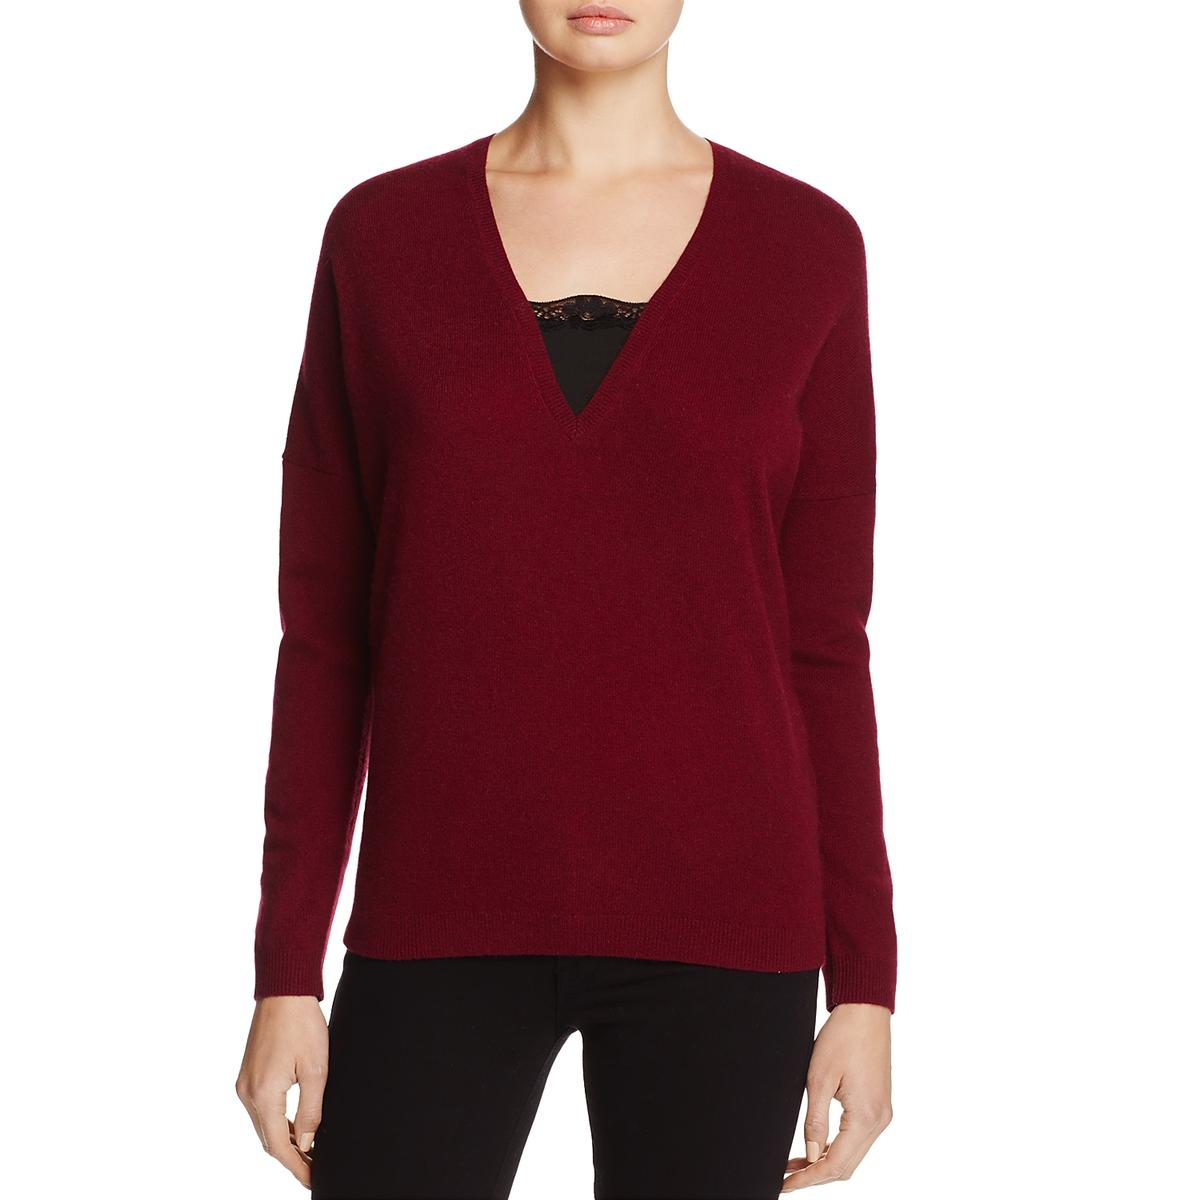 Private Label Womens Red Cashmere Lace Trim Pullover Sweater XS BHFO ... d3b6757be